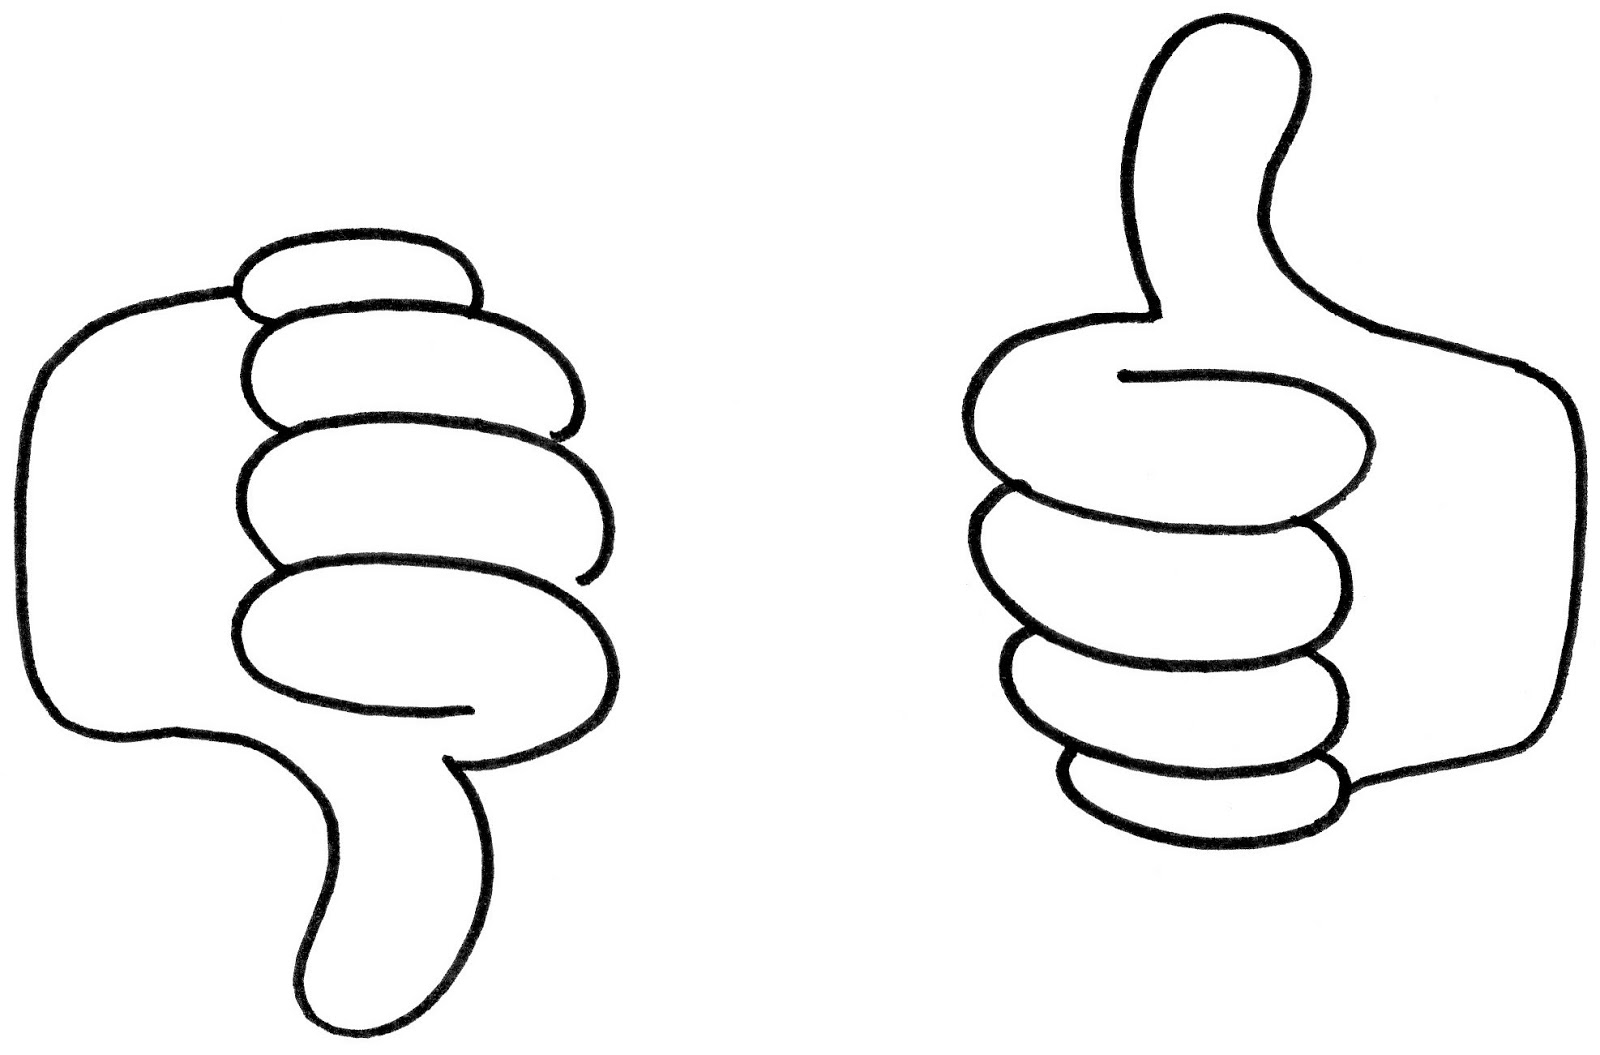 Free Cliparts Thumbs Sideways, Download Free Clip Art, Free.